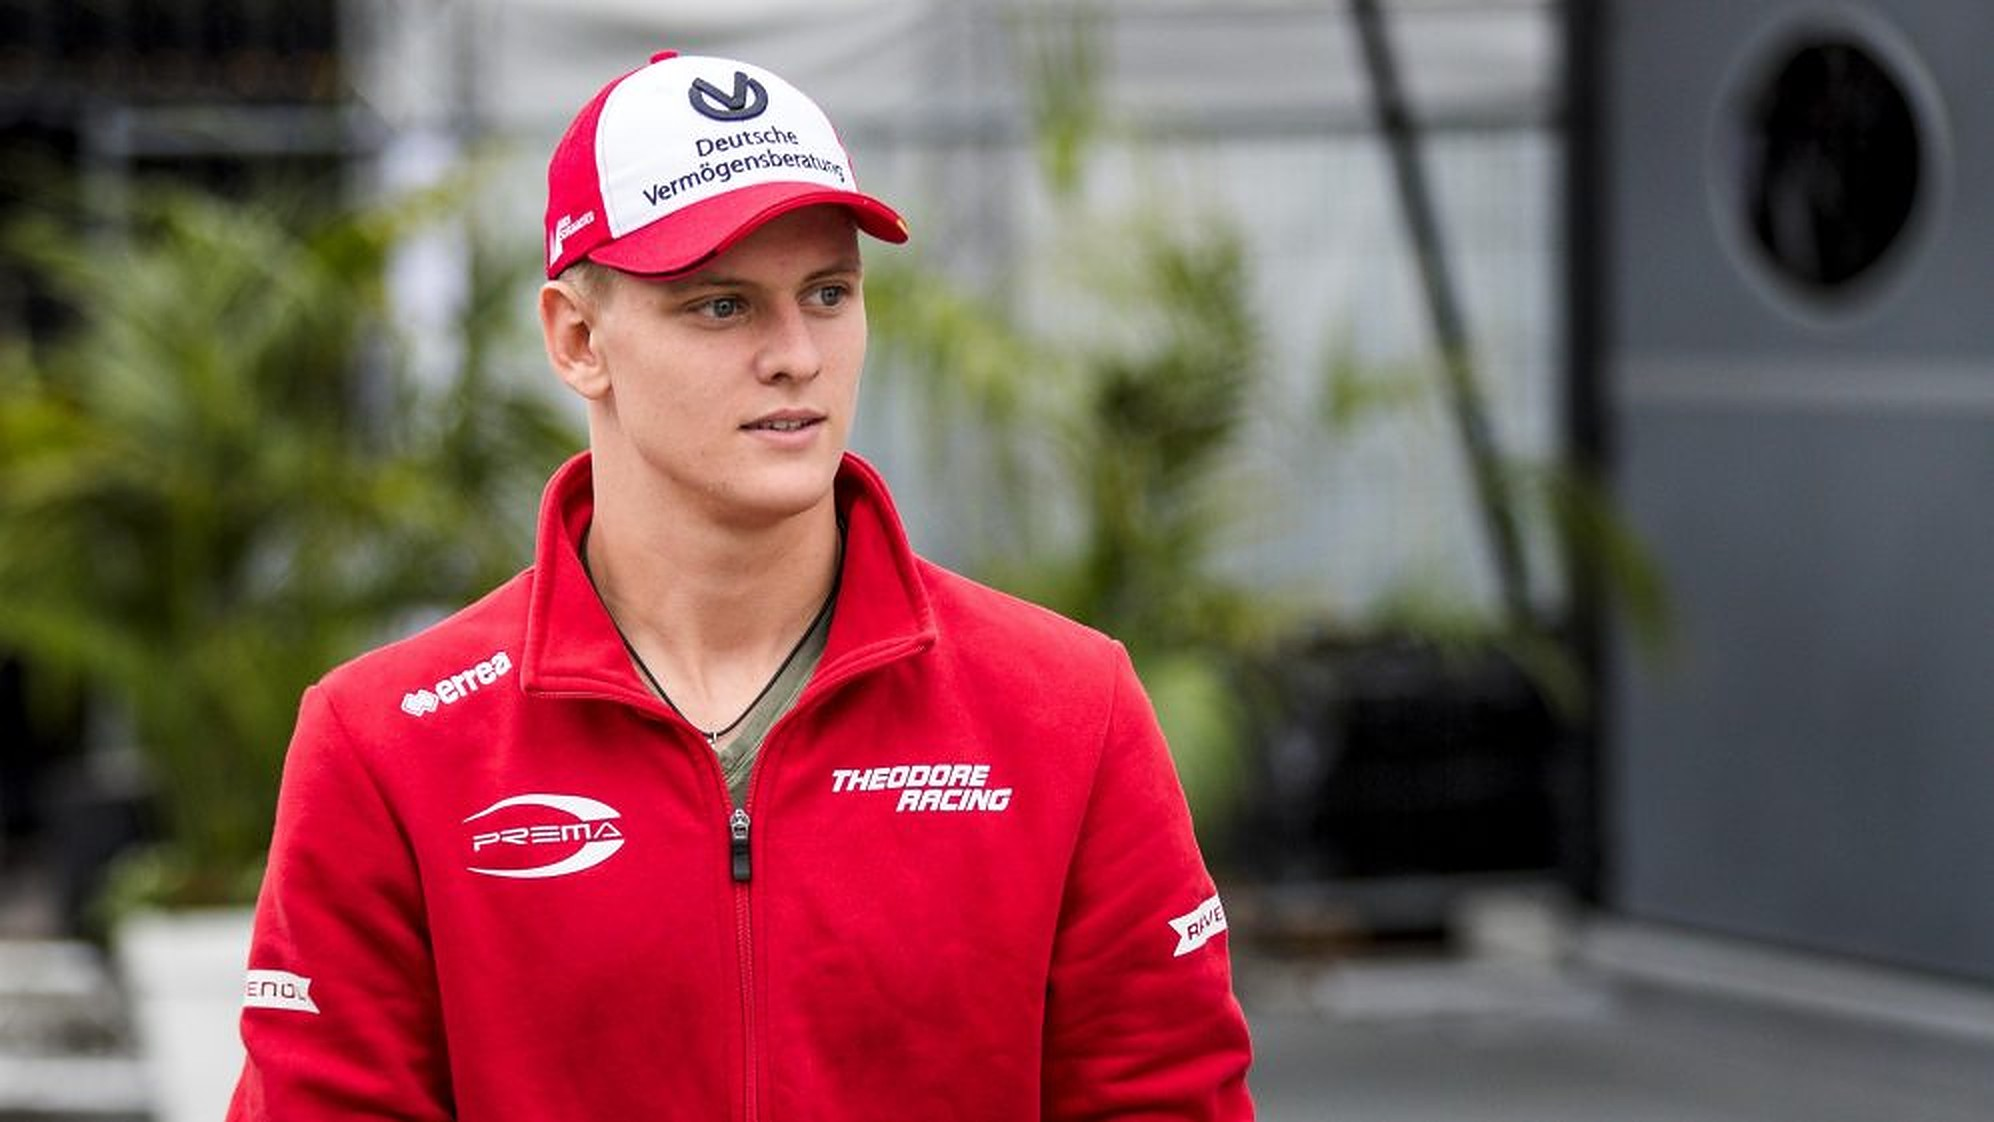 Mick Schumacher Nikita Mazepin Poised To Join Haas